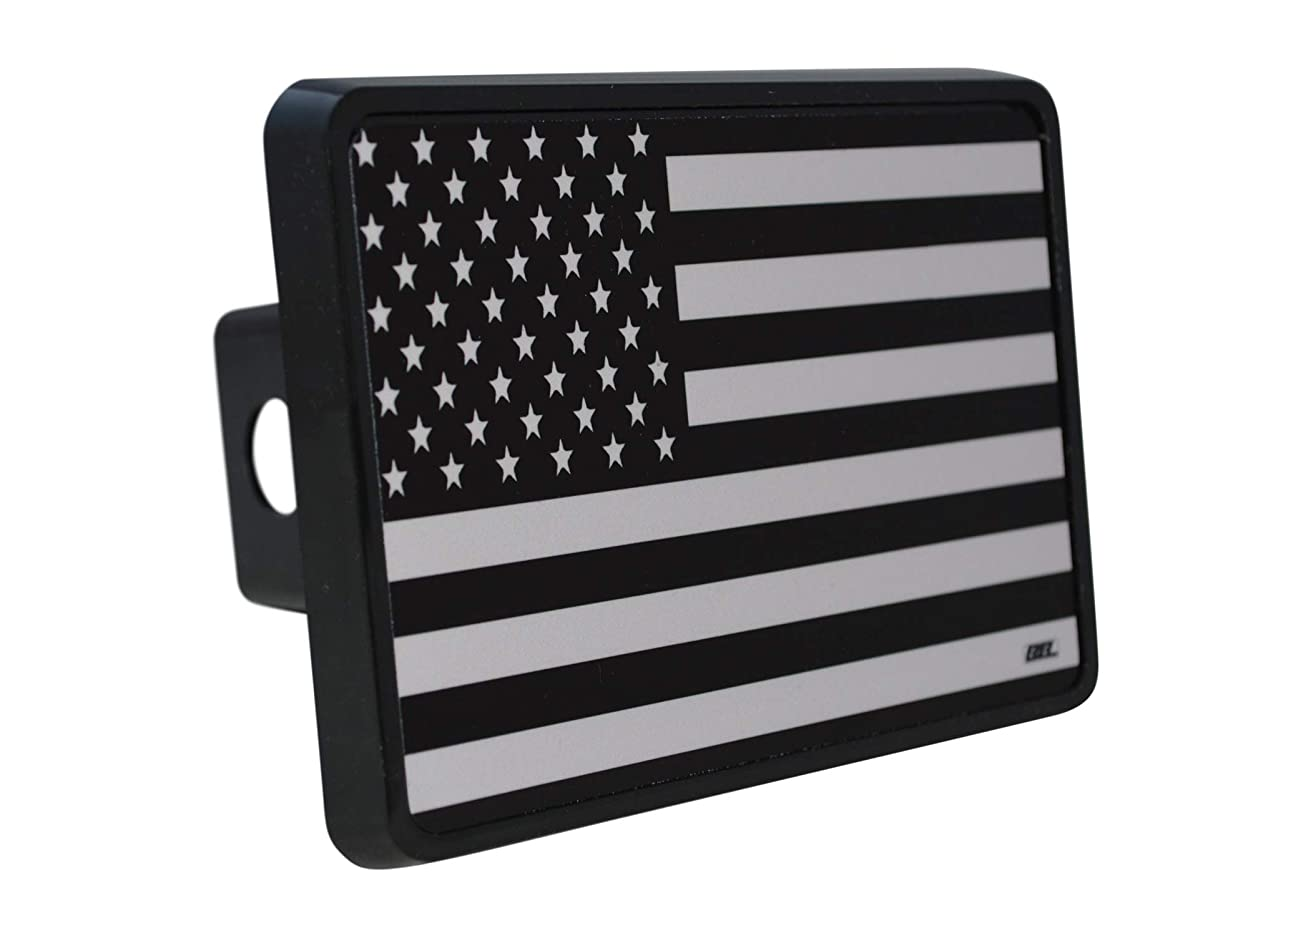 Rogue River Tactical USA American Flag Trailer Hitch Cover Plug US Patriotic Subdued Military Veteran Flag